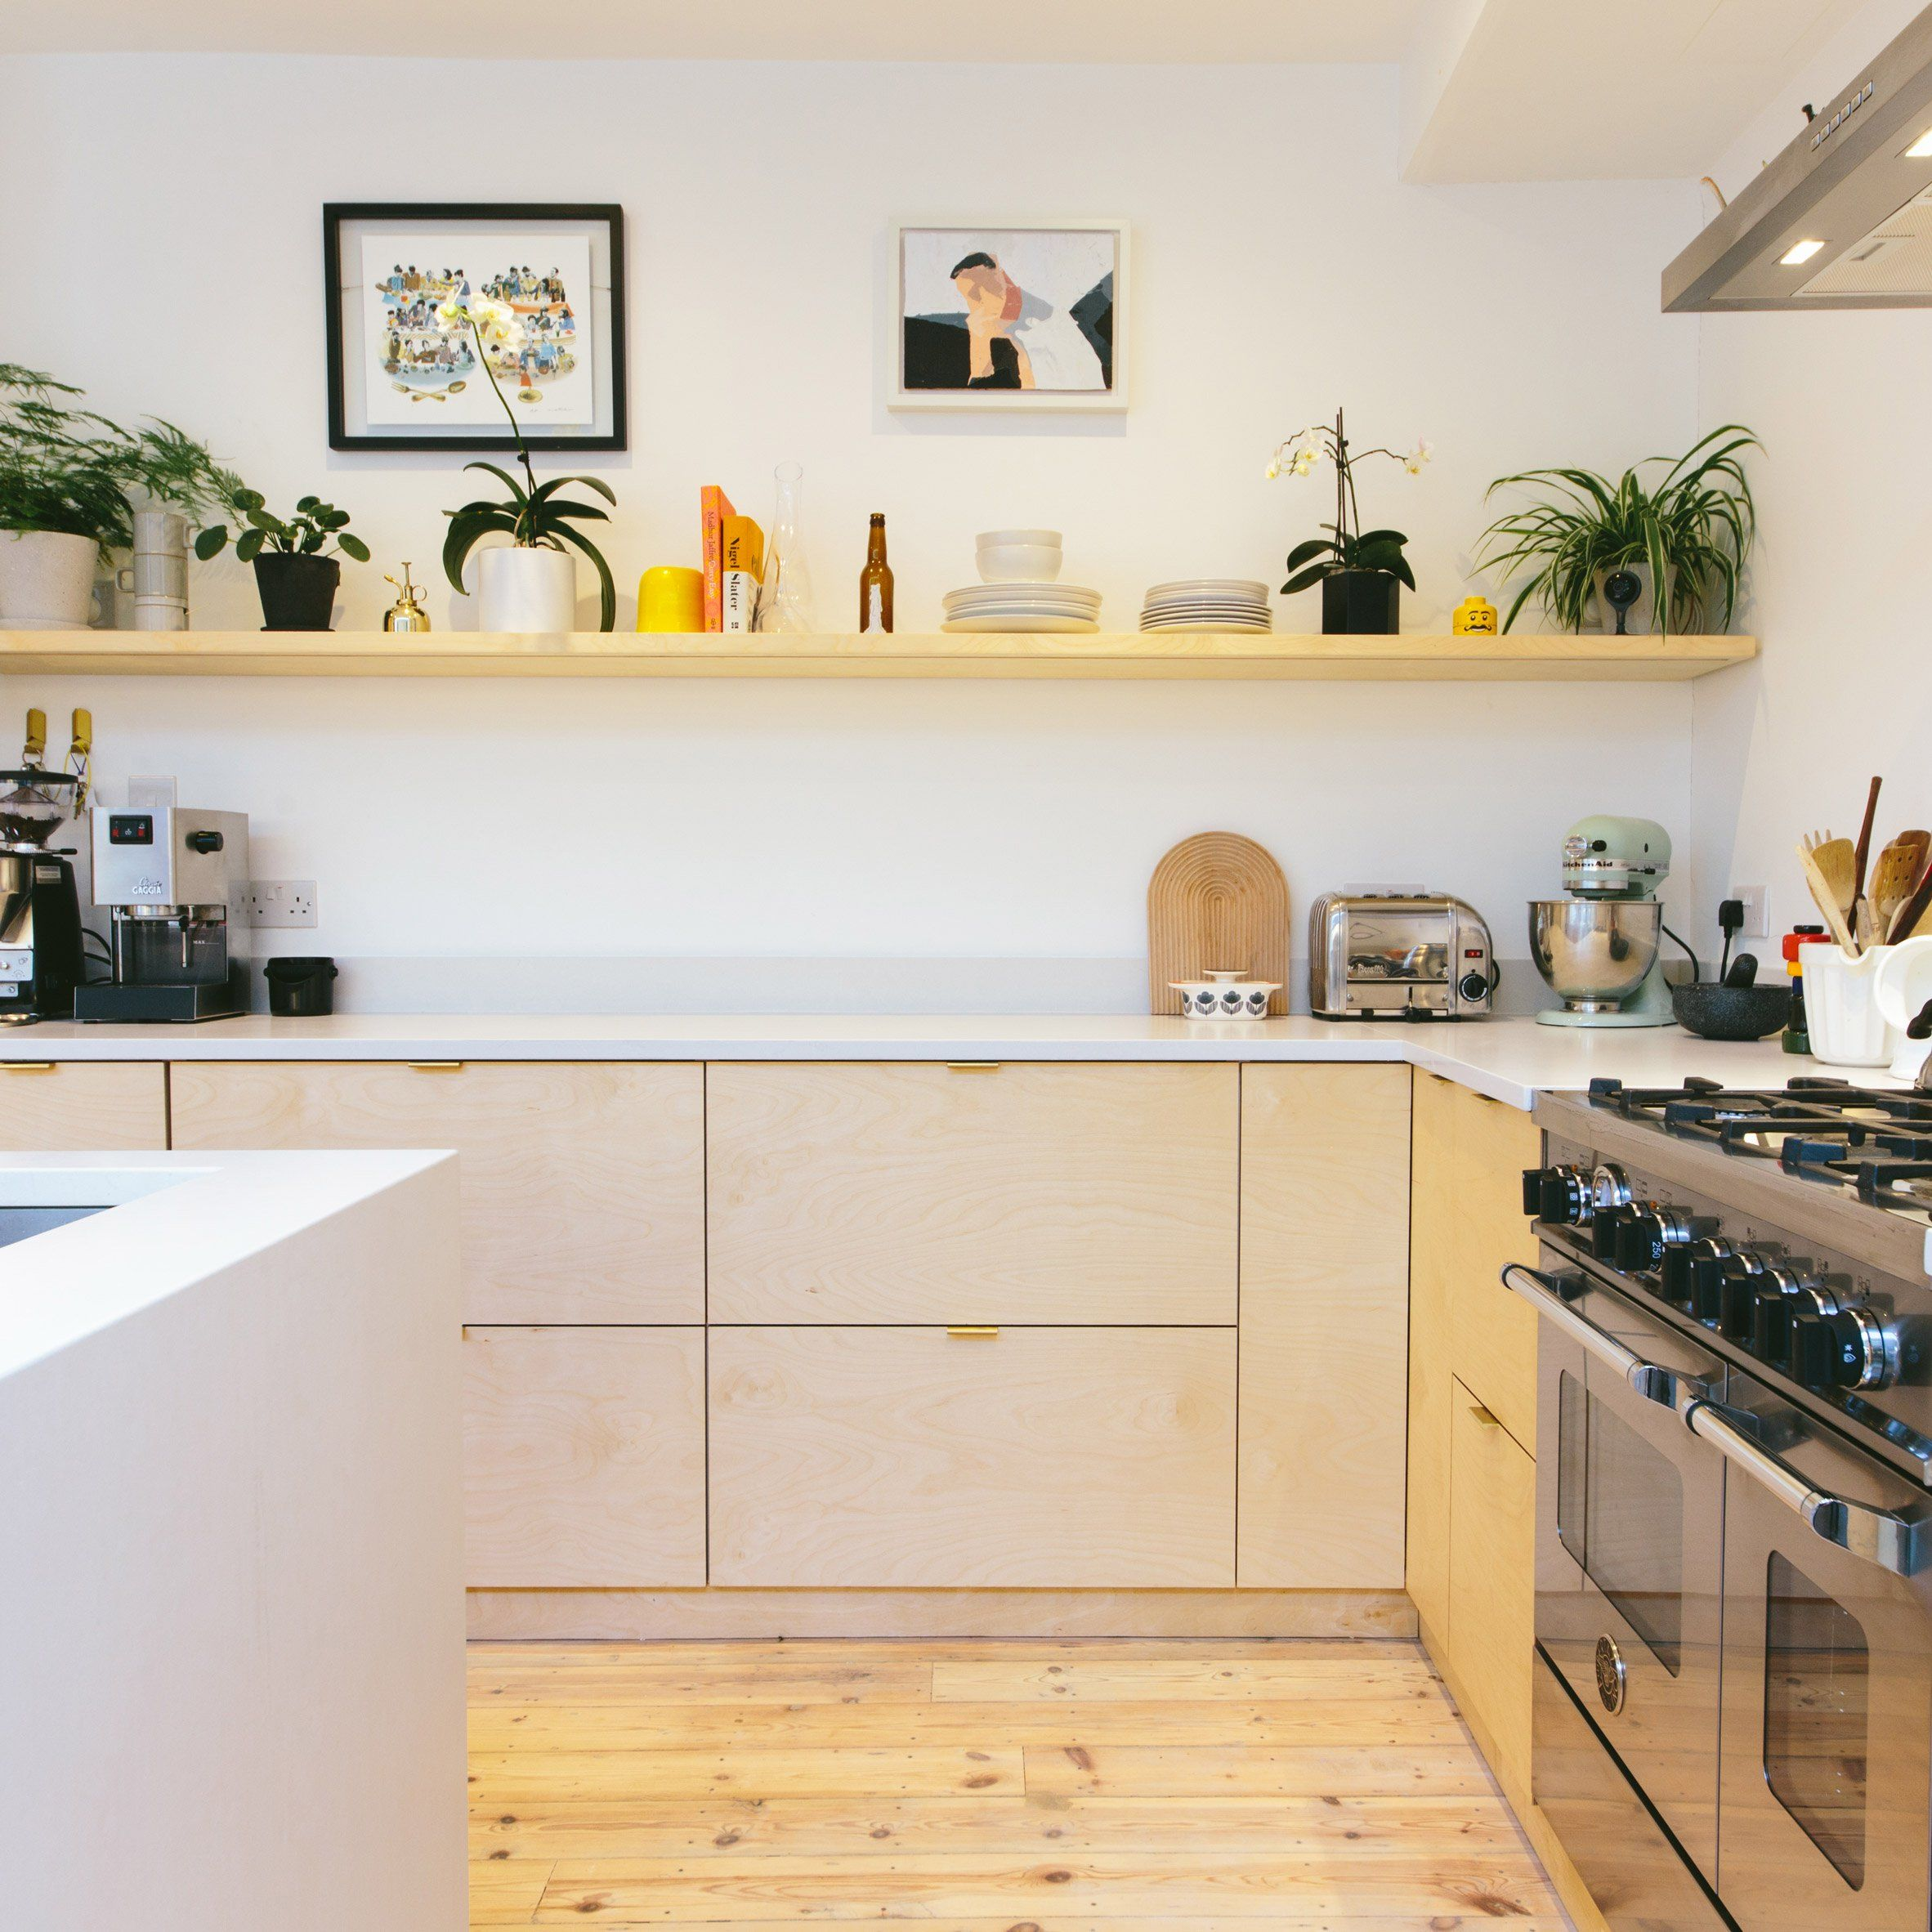 Current Obsession Plywood Kitchens Plywood Kitchen - Grenen Vloer In Keuken